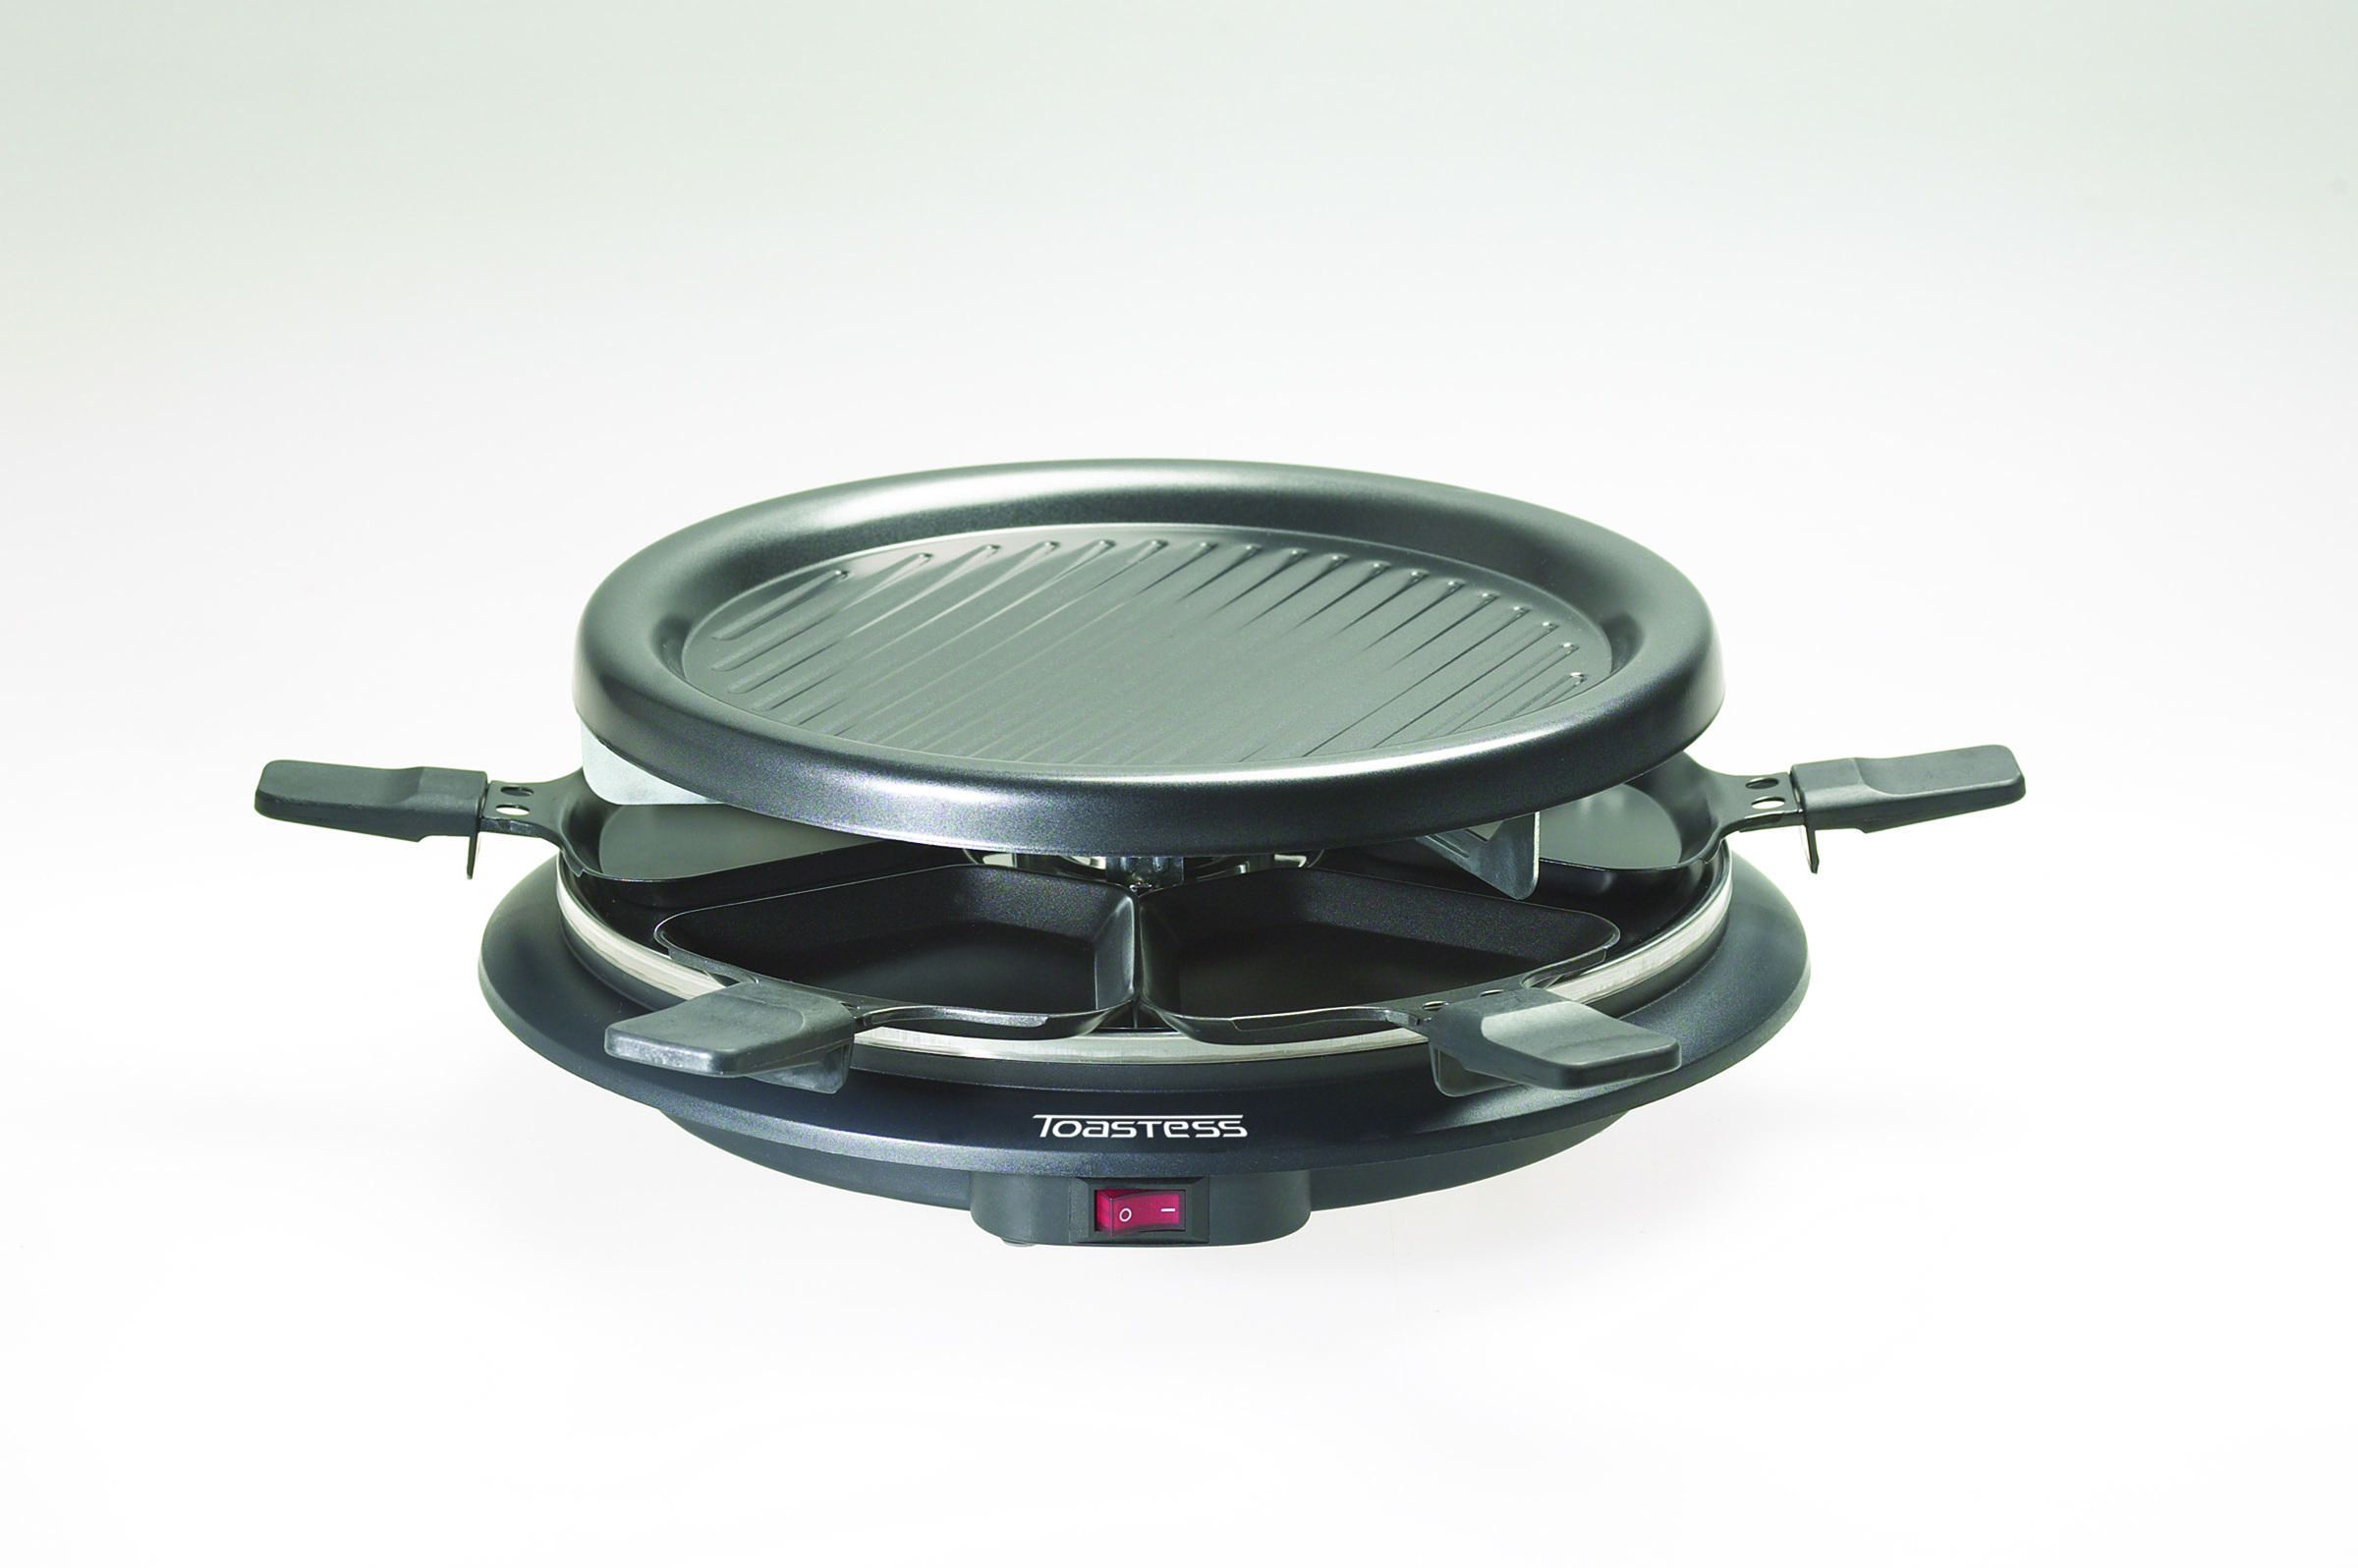 Raclette Grill Australia raclette grill australia raclette device in a moder design